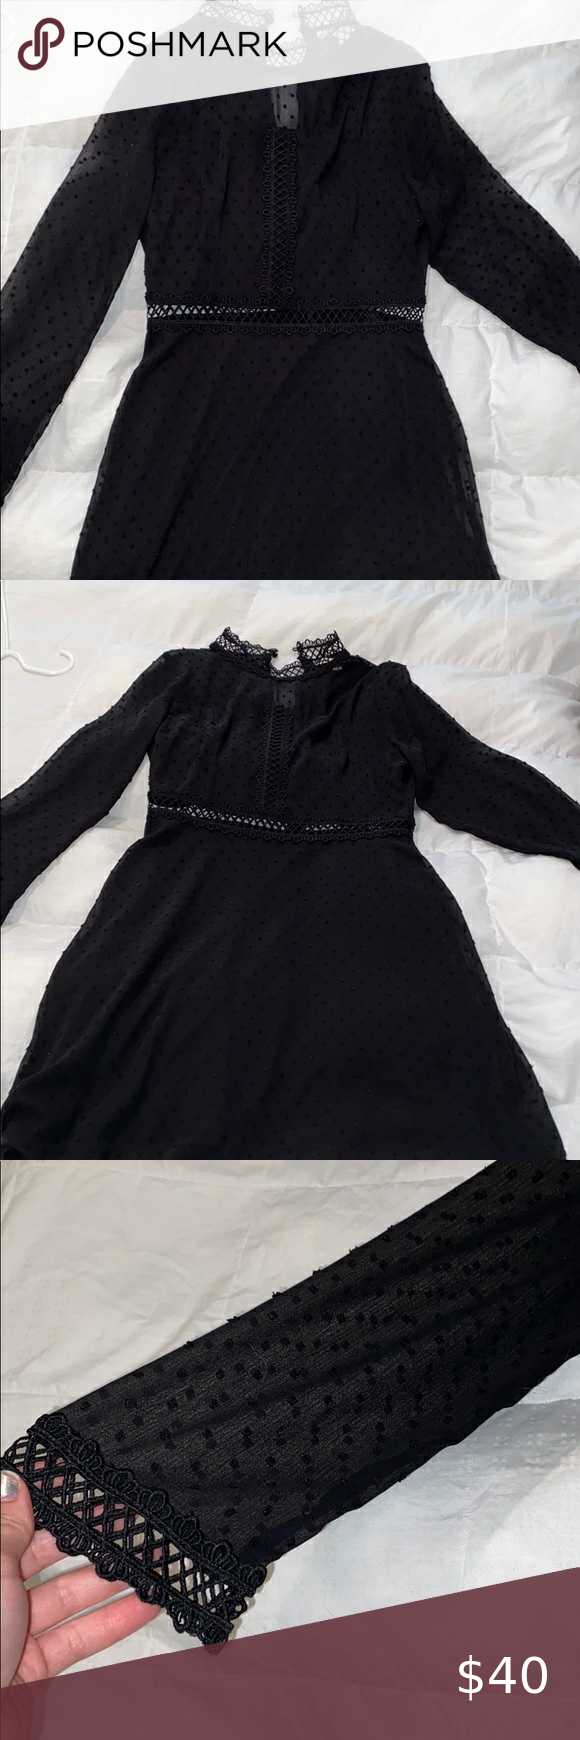 Black Dress This Is A Black Long Sleeve Dress The Sleeves Are Sheer And So Is The Top Part Of The Back There Is A Black Long Sleeve Dress Black Dress [ 1740 x 580 Pixel ]